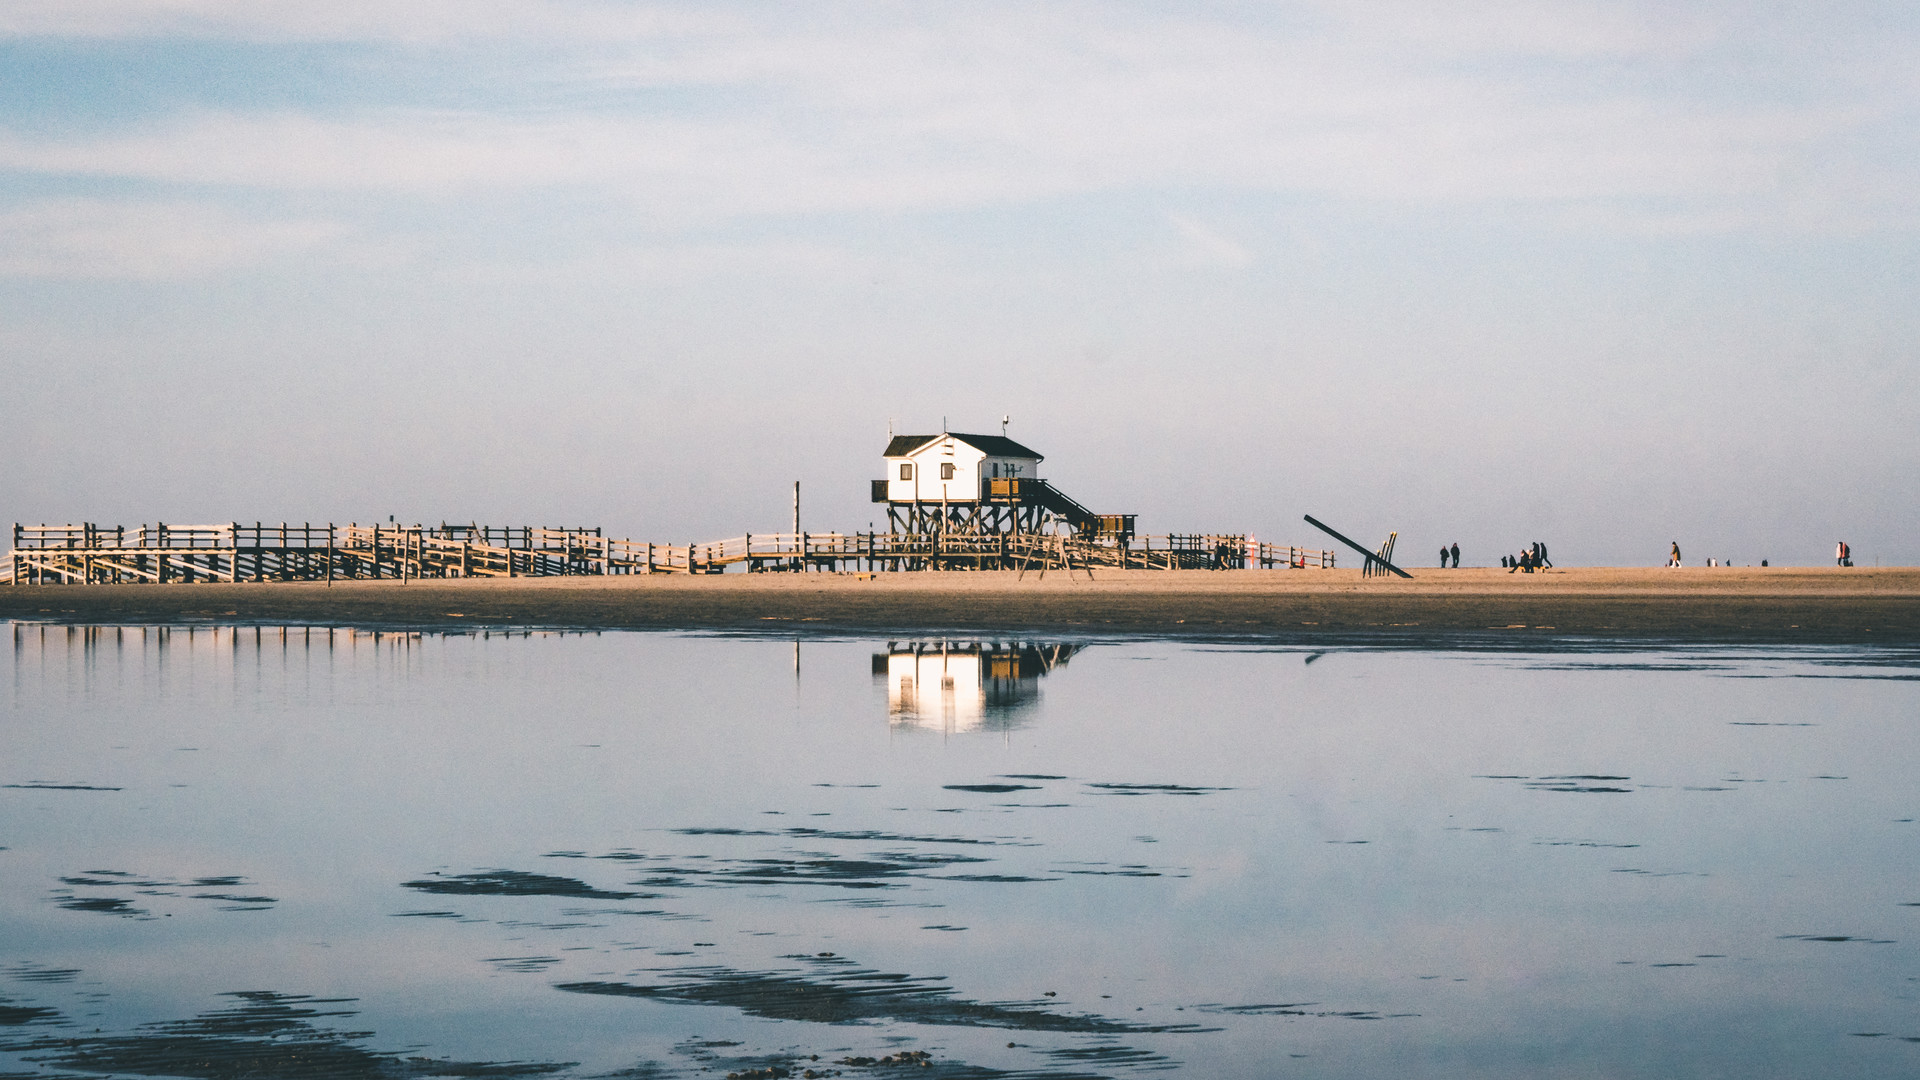 House and reflection in still water at the beach in Germany